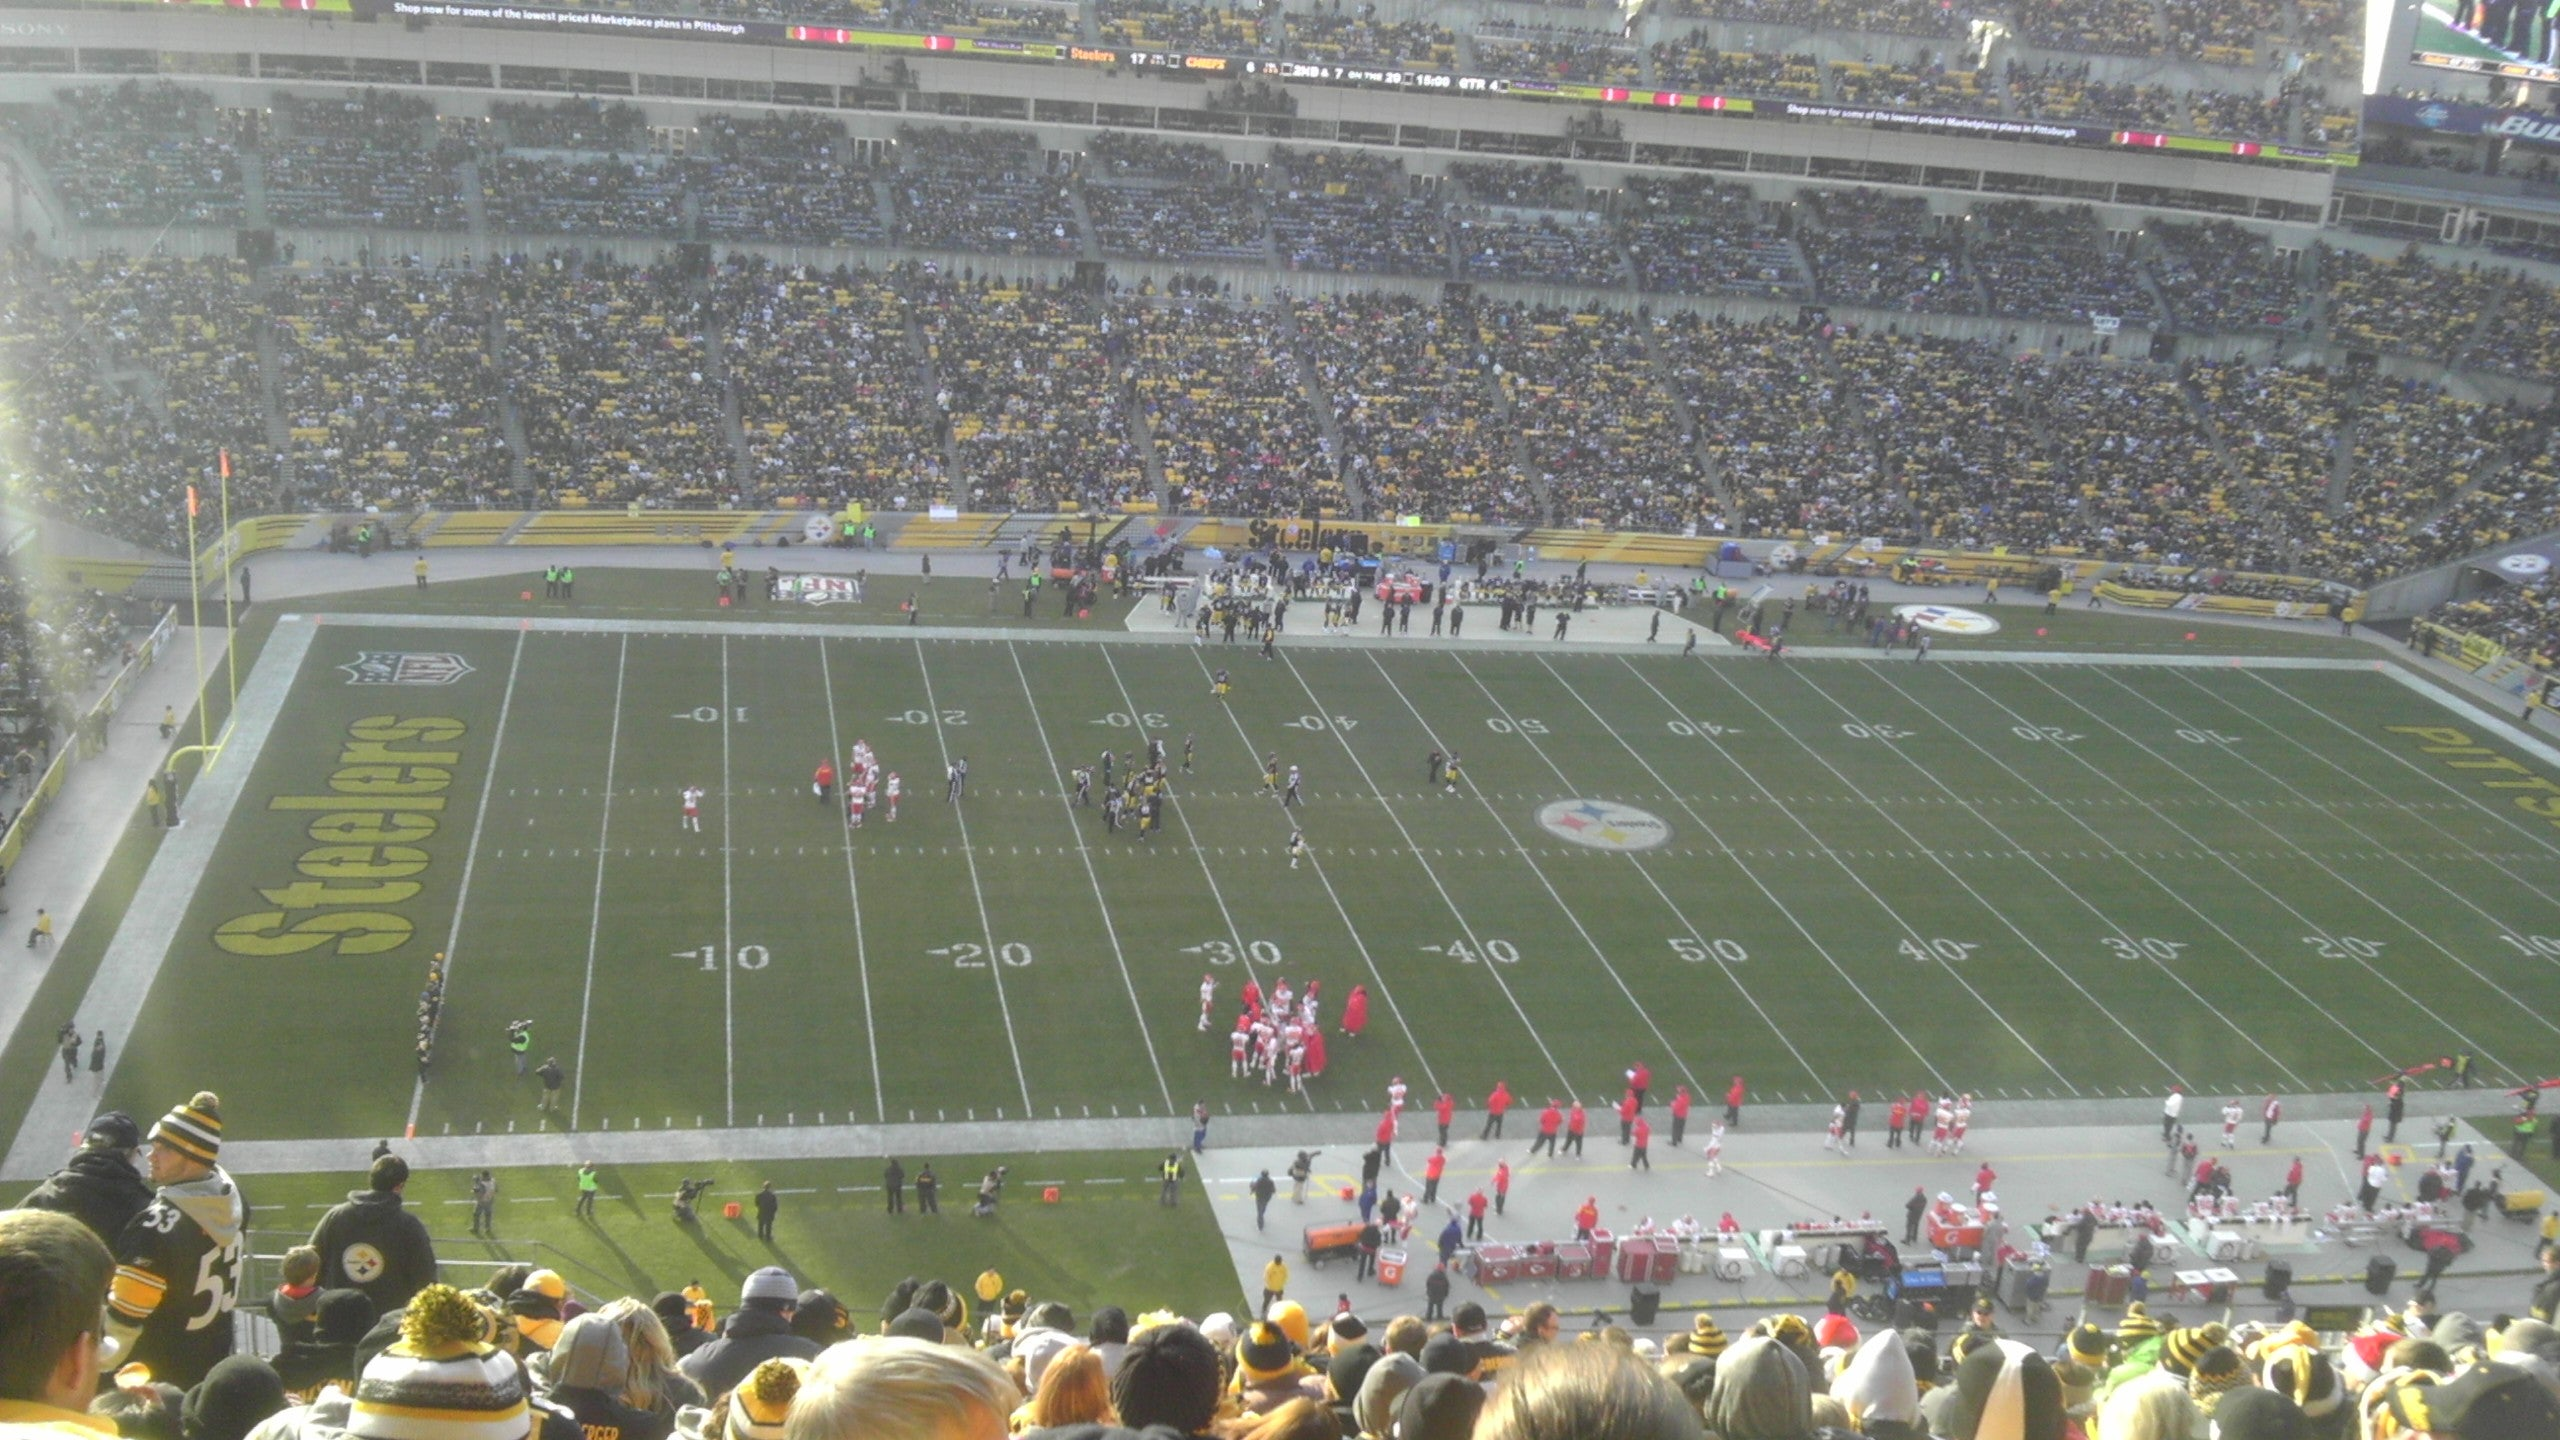 Carrera de coches en Heinz Field